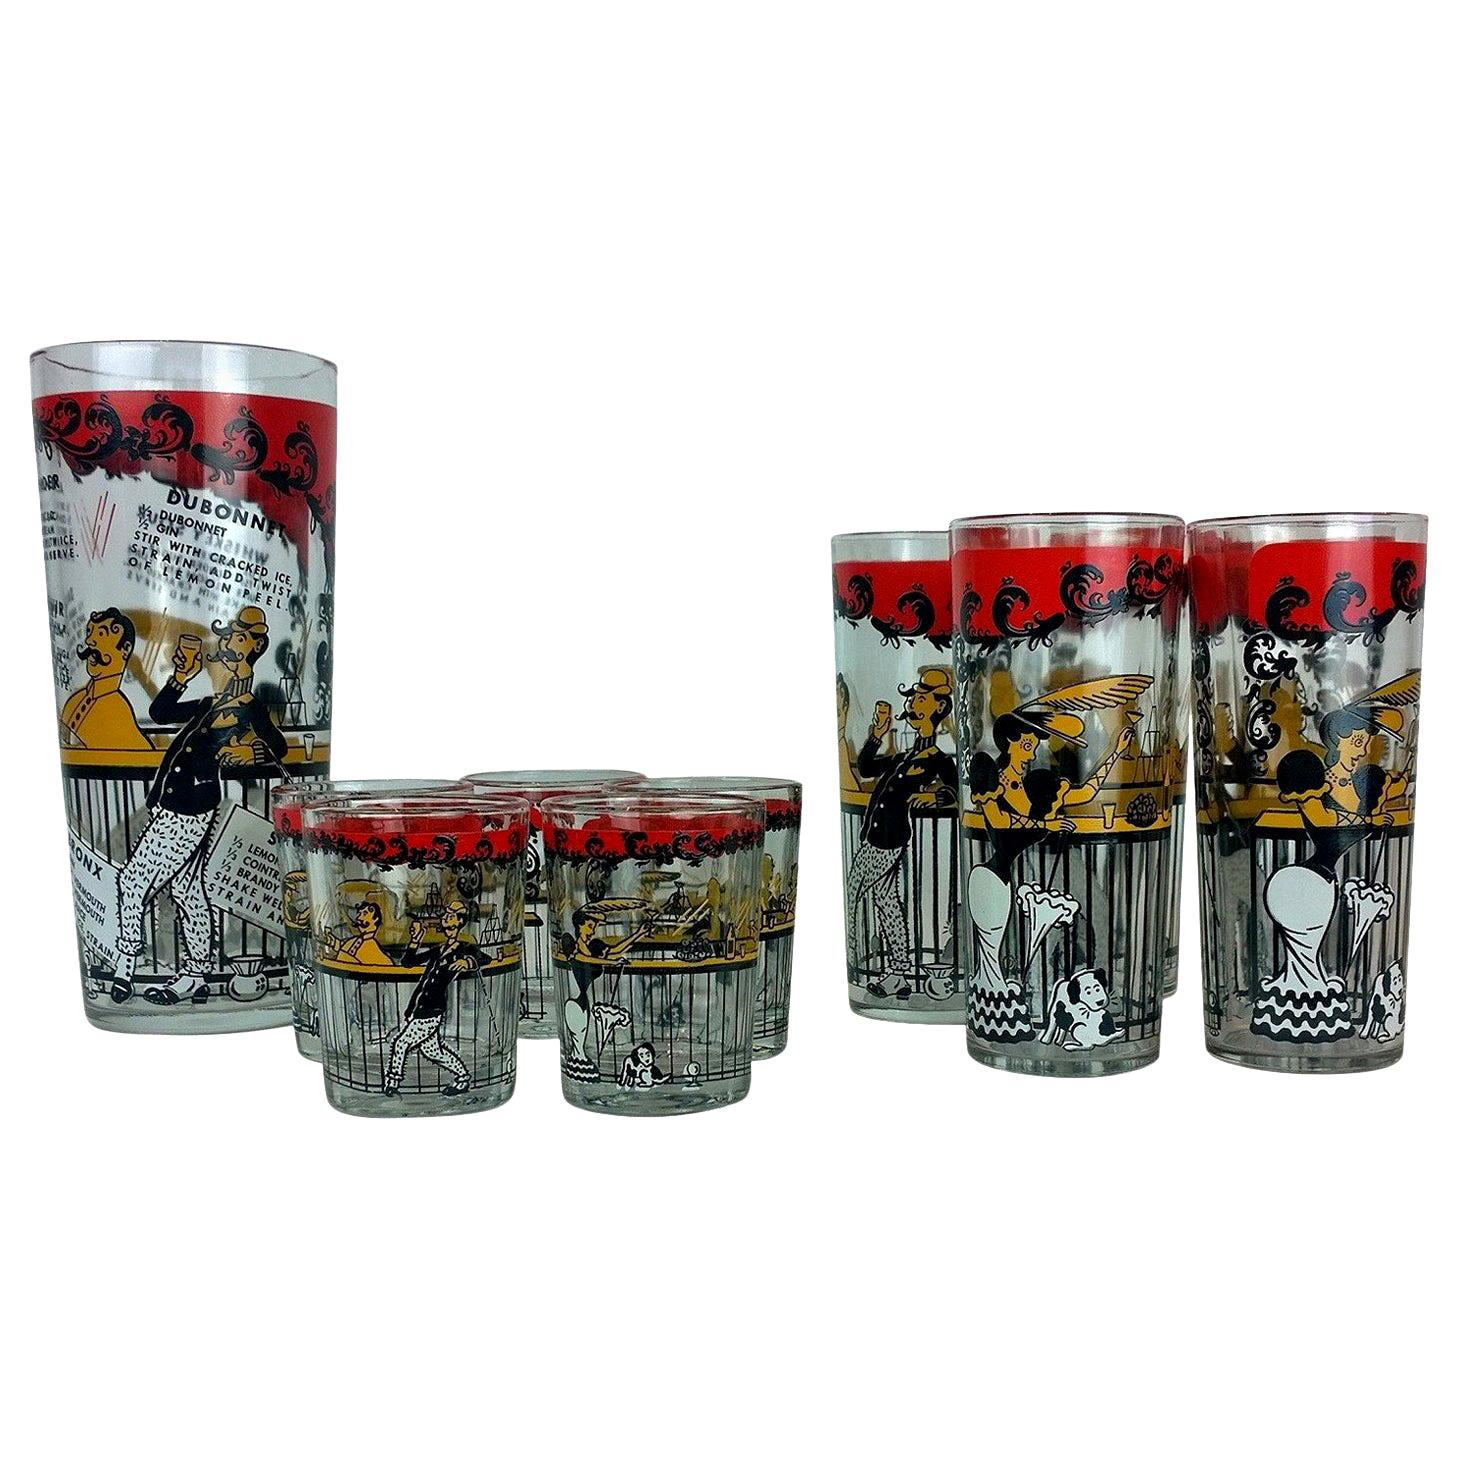 Set of 11 Red, Black & Gold Moulin Rouge Theme Overlay Cocktail Glasses & Shaker